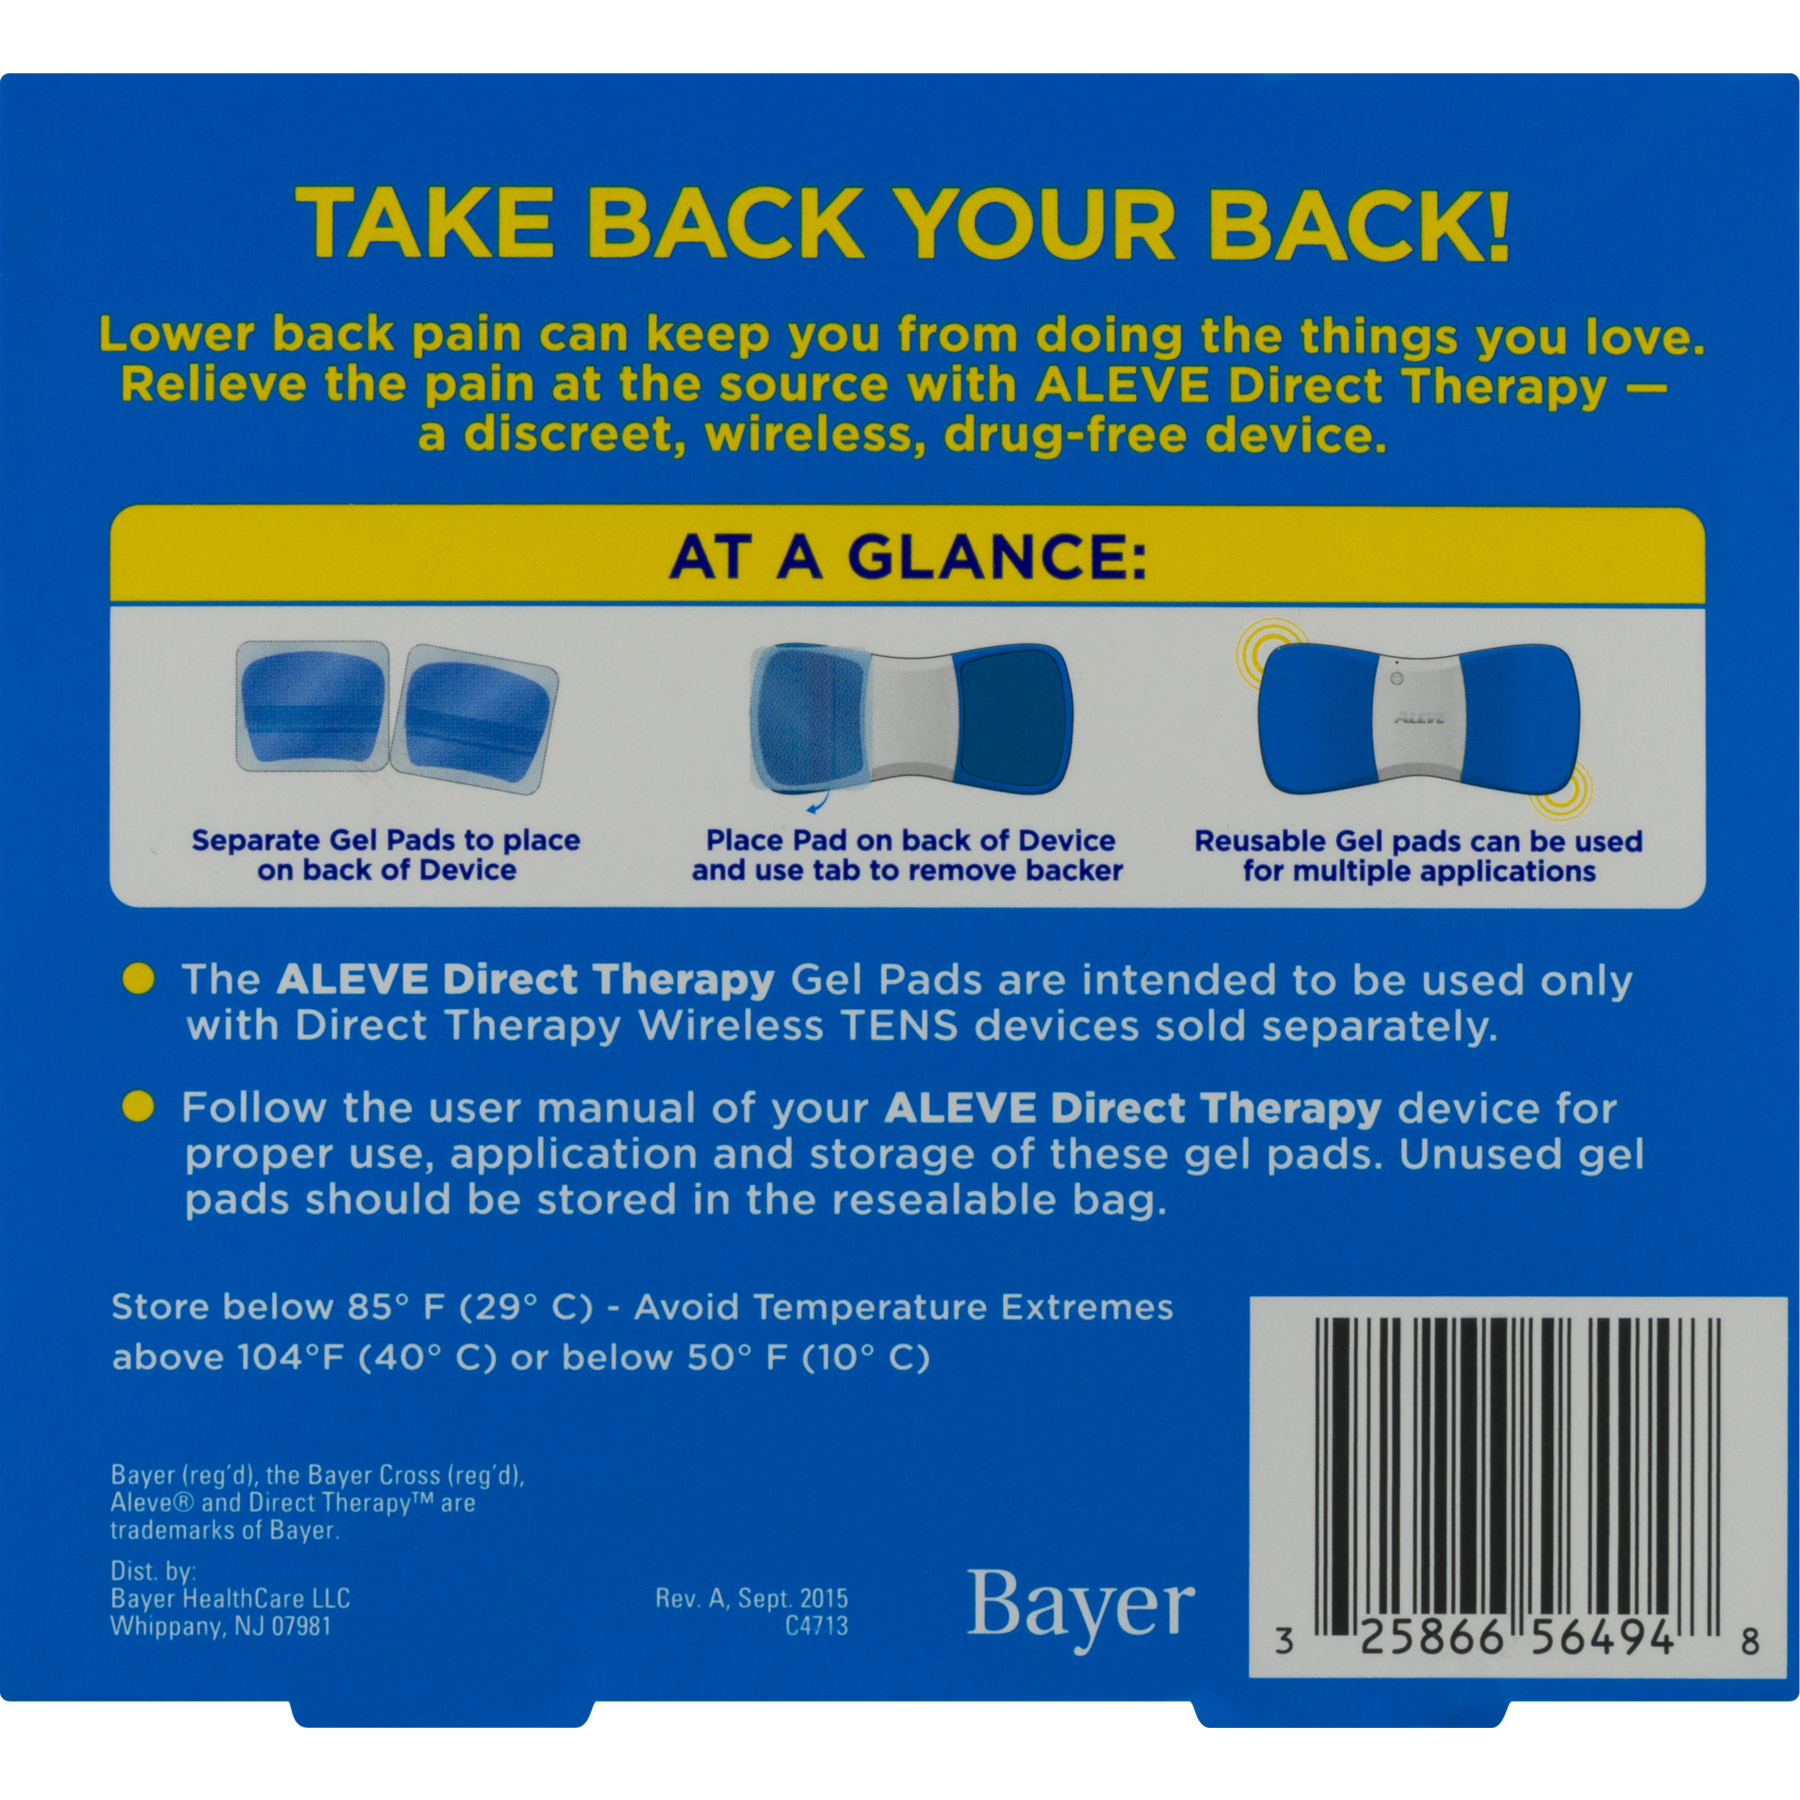 Aleve Direct Therapy Relief From Lower Back Pain Refill Gel Pads - 2 CT -  Walmart.com